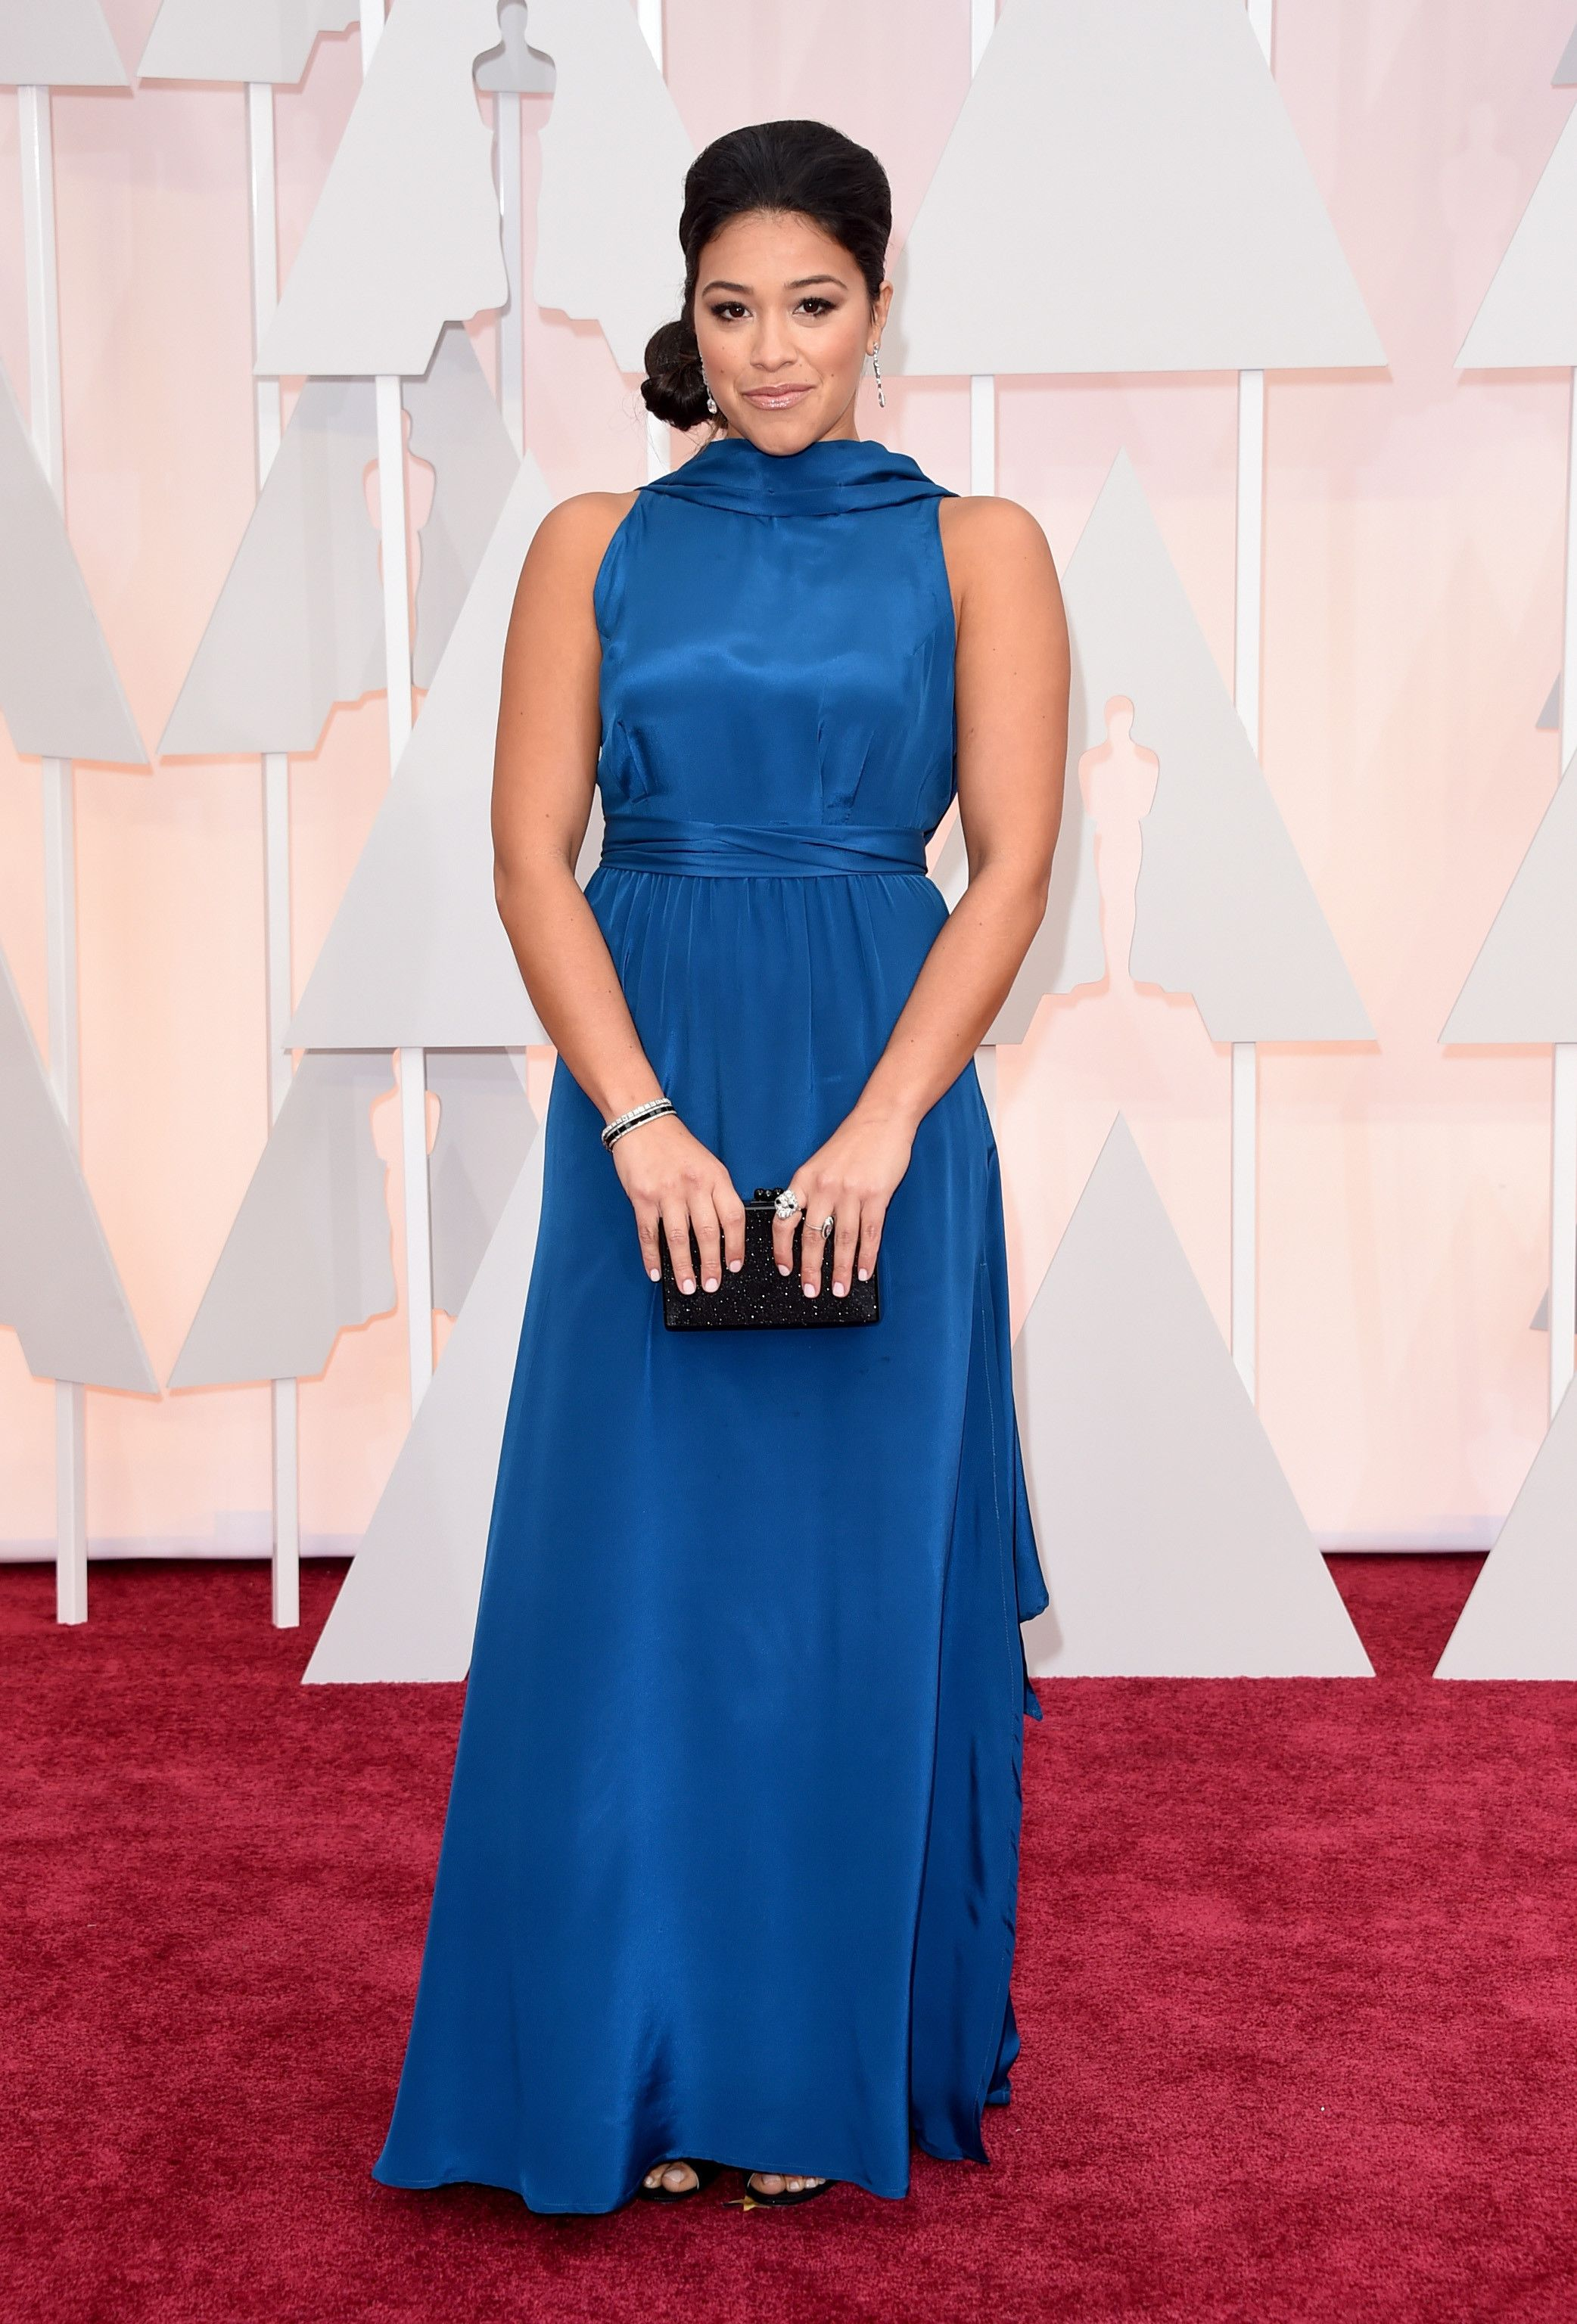 Porn Star Gina Rodriguez Complete the surprising trend gina rodriguez rocked to the oscars   gina